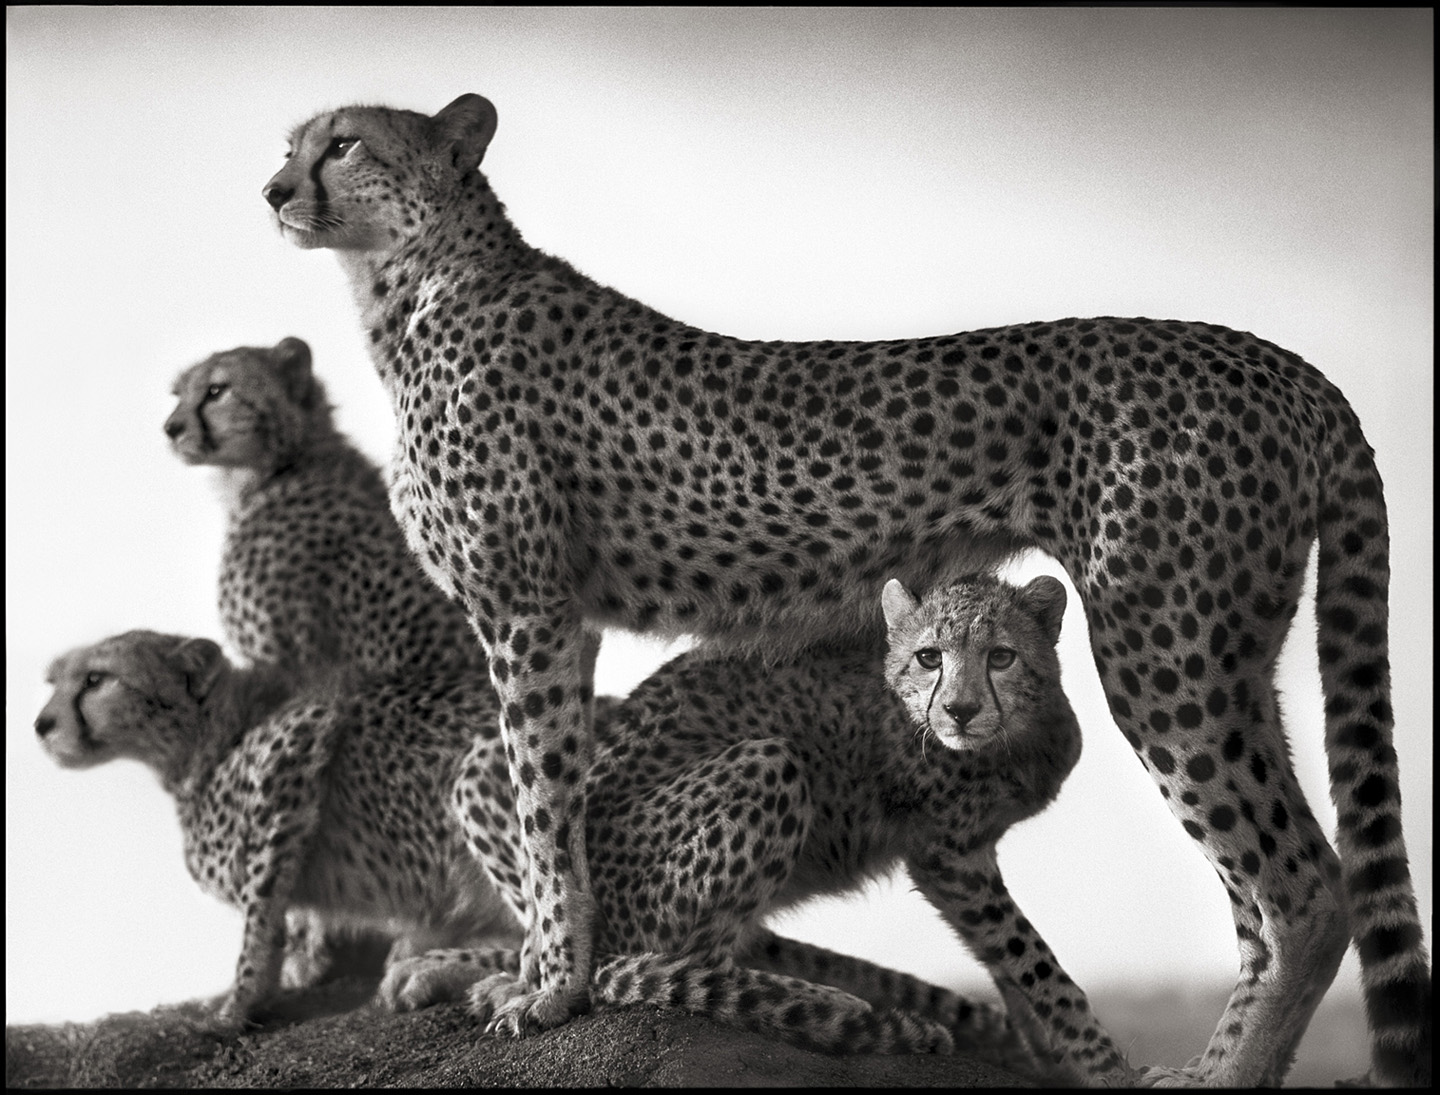 Nick BRANDT, Cheetah And Cubs, 2003